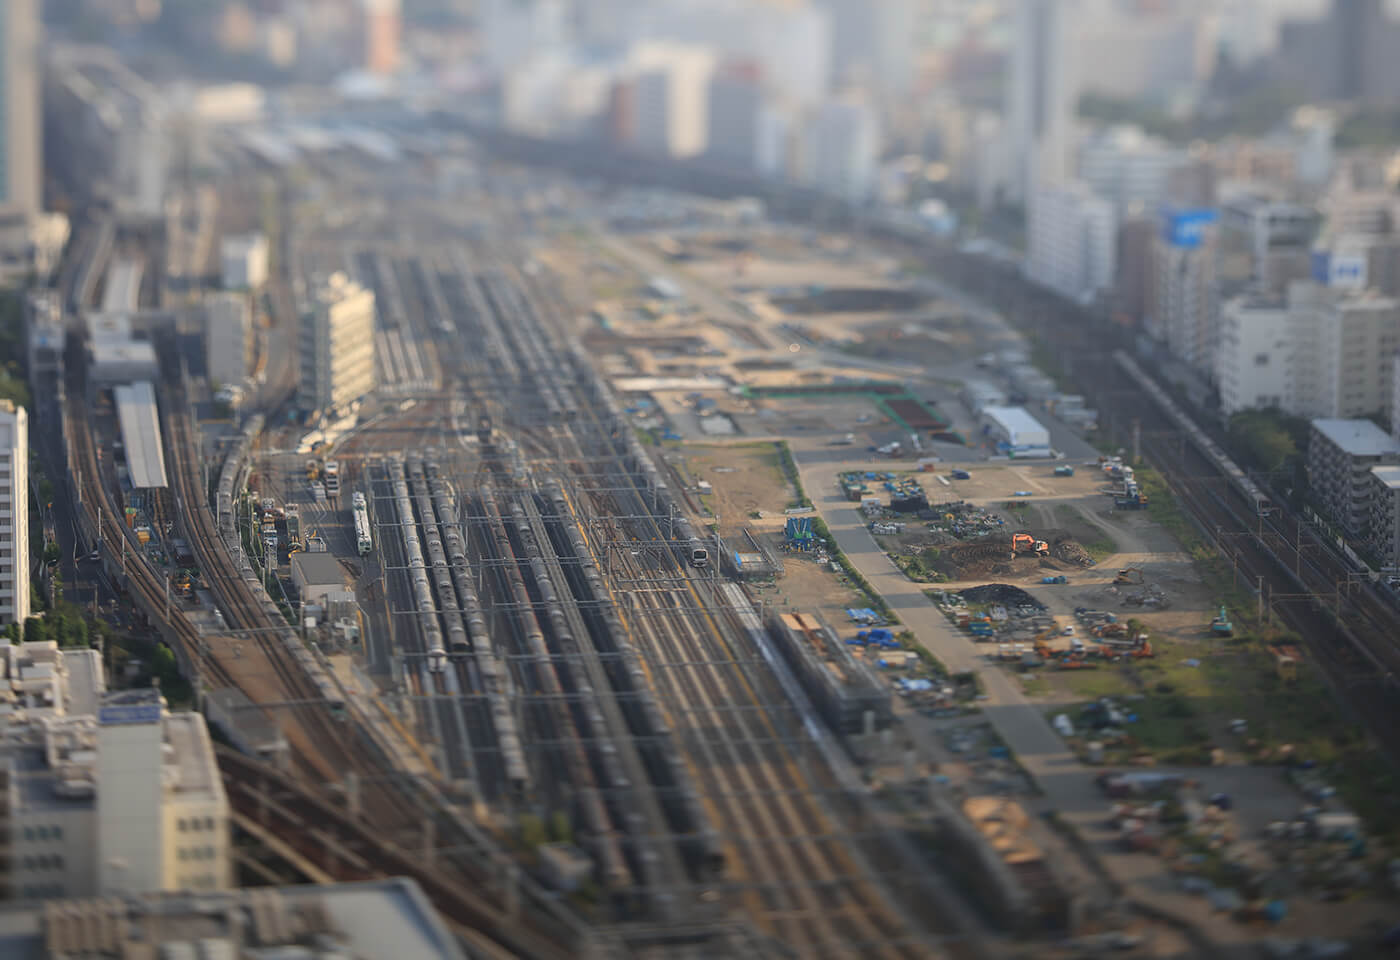 Train tracks sample image taken with TS E 90mm f 2 8L Macro Tilt Shift